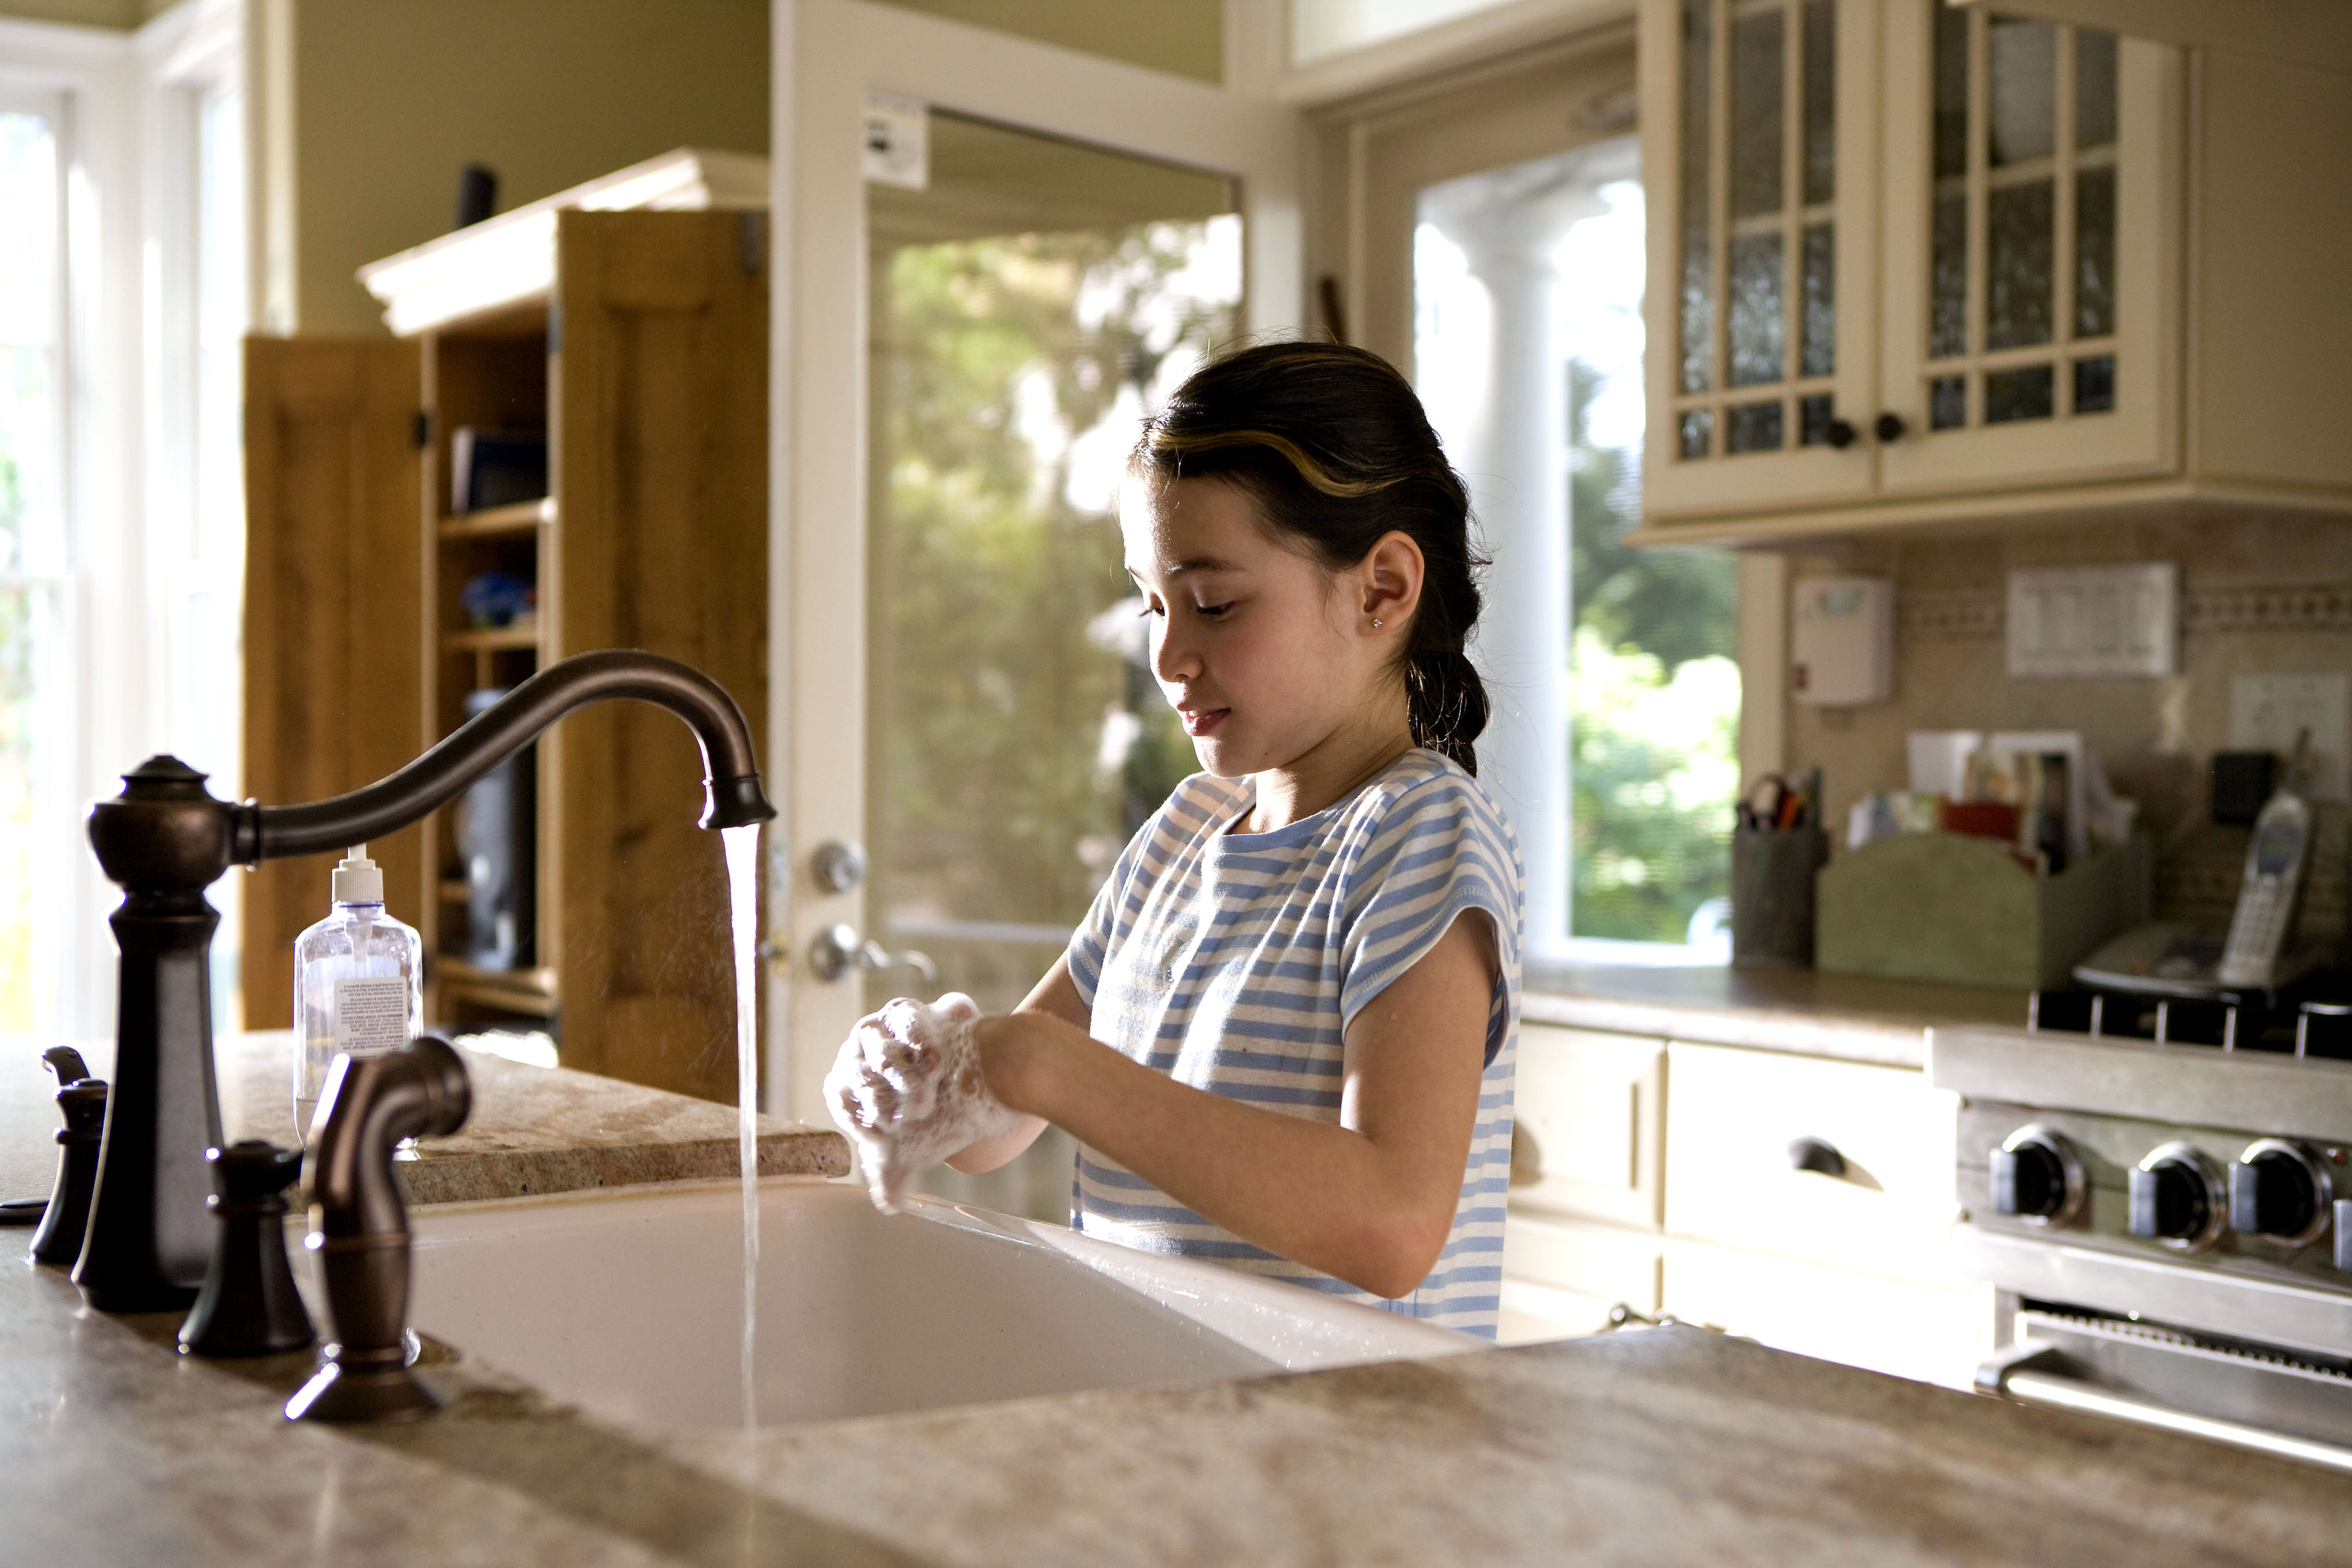 ... Young Girl, Shown, Process, Washing, Hands, Kitchen, Sink